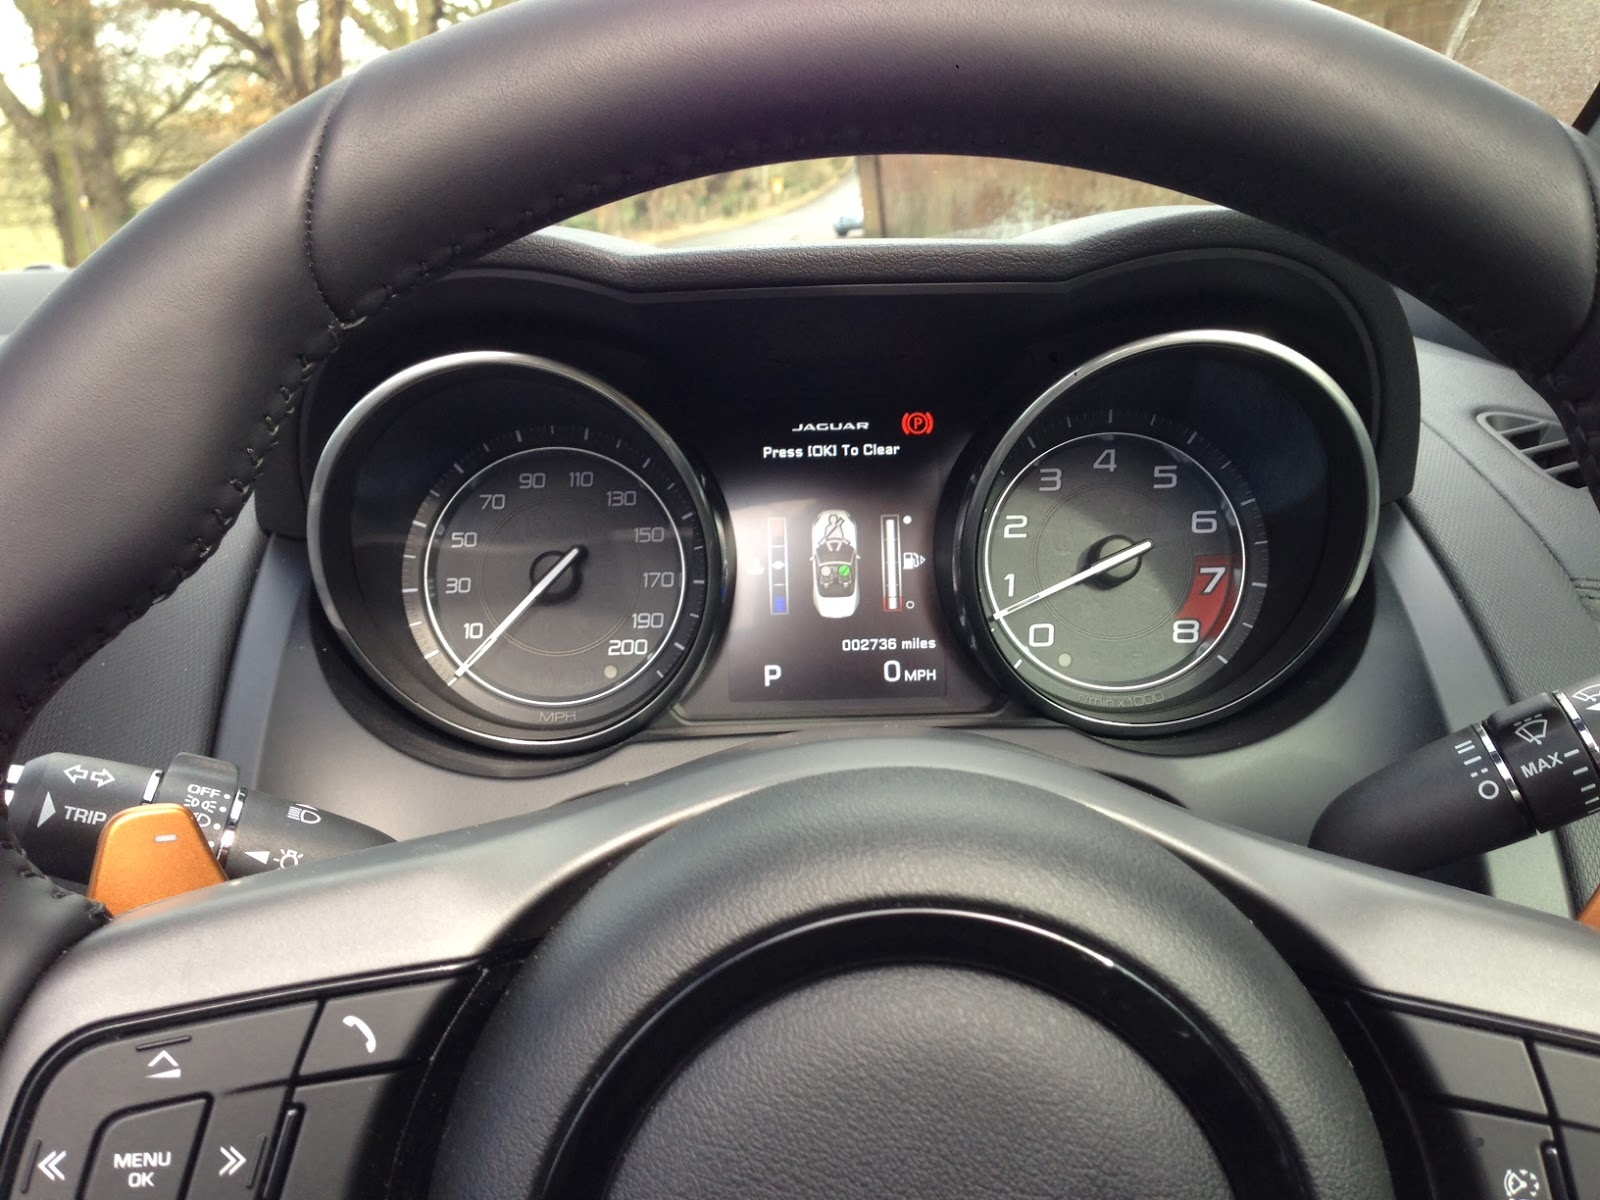 2014 Jaguar F-Type V8 S Convertible dials